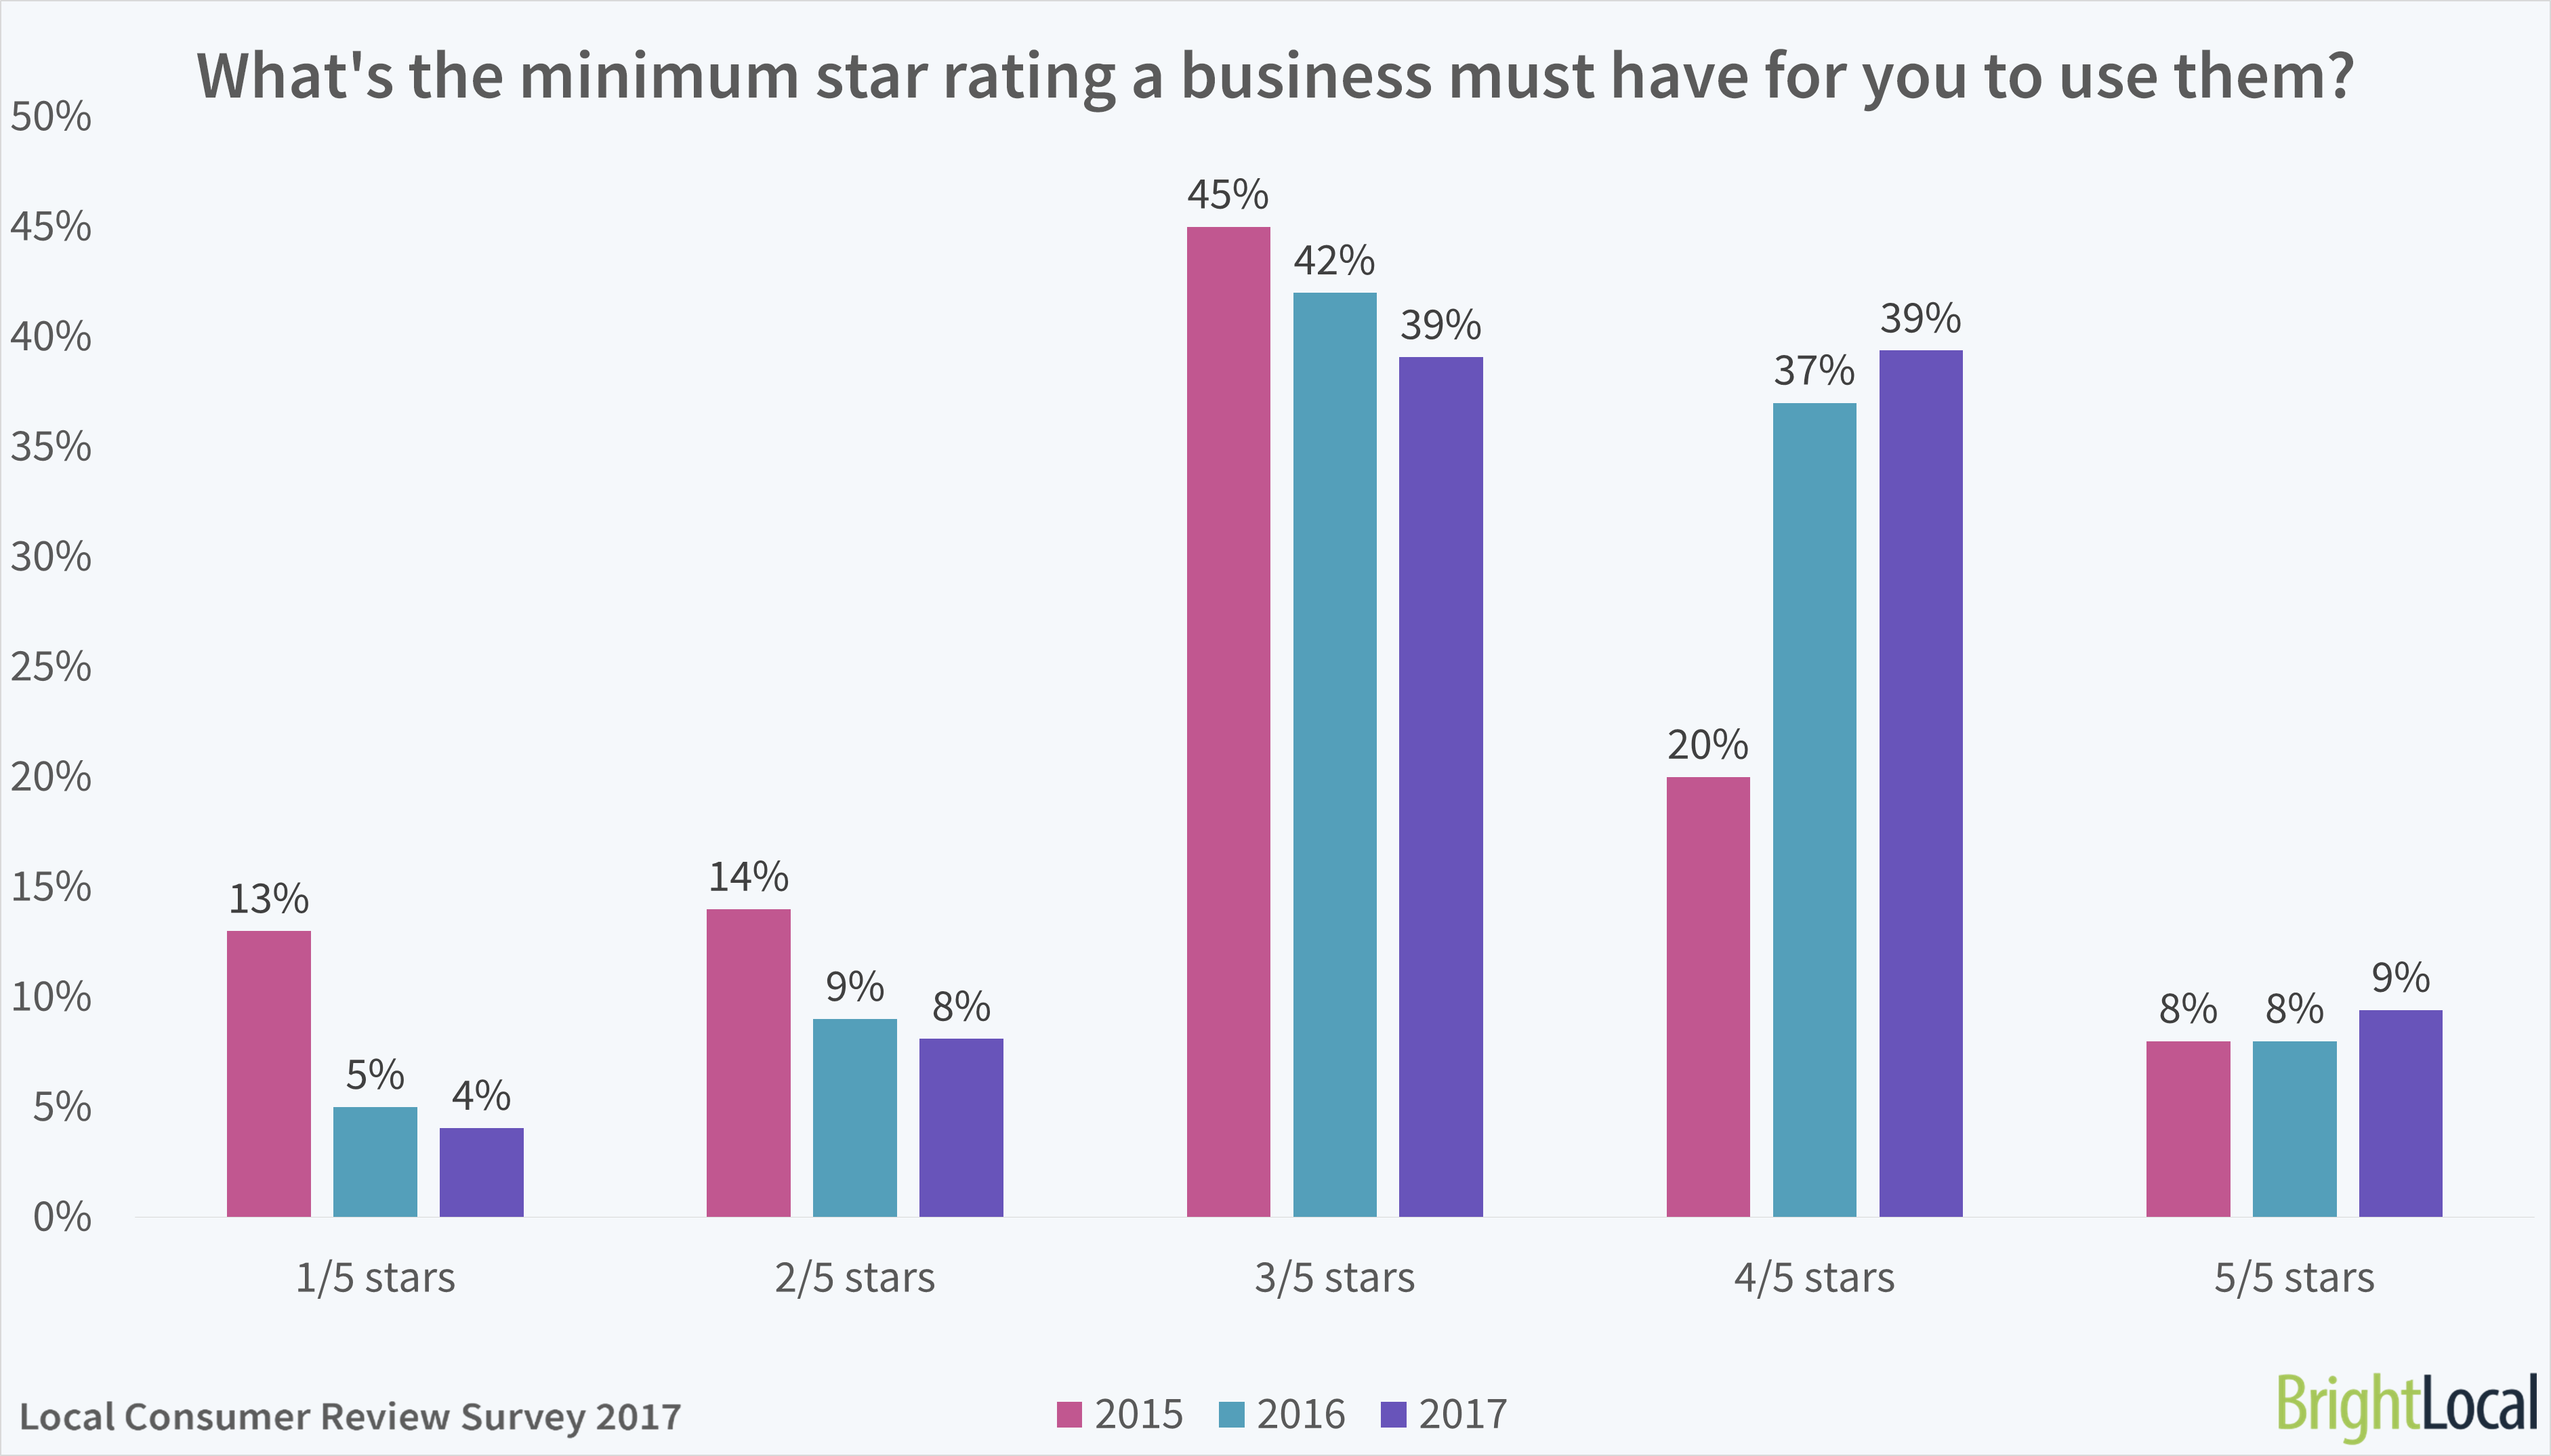 What's the minimum star rating a business must have for you to use it? BrightLocal Consumer Review Survey 2017